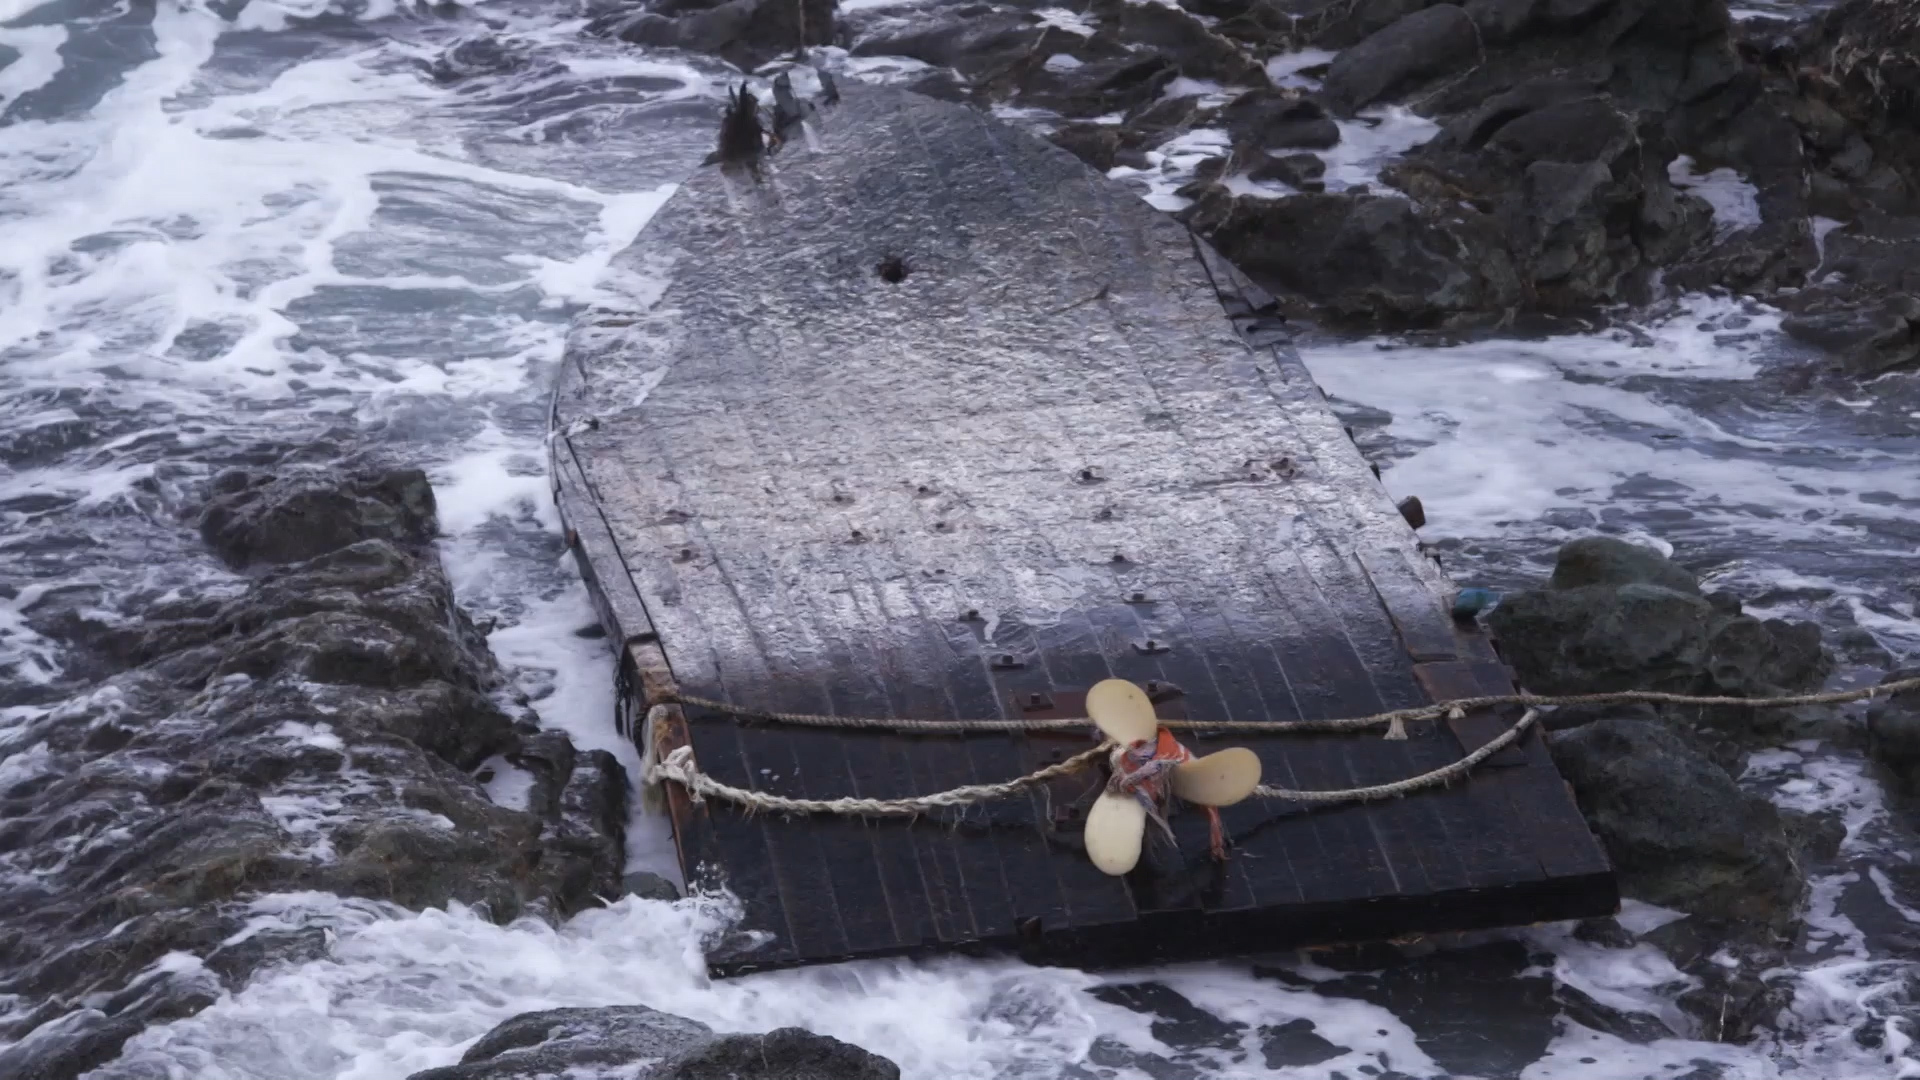 An overturned North Korean fishing boat washed up on the coast of Japan. North Korean fishermen seem to be venturing out into more dangerous waters as they get displaced by large Chinese trawlers fishing for squid in North Korean waters. (South Korea Fisheries Agency/The Outlaw Ocean Project)